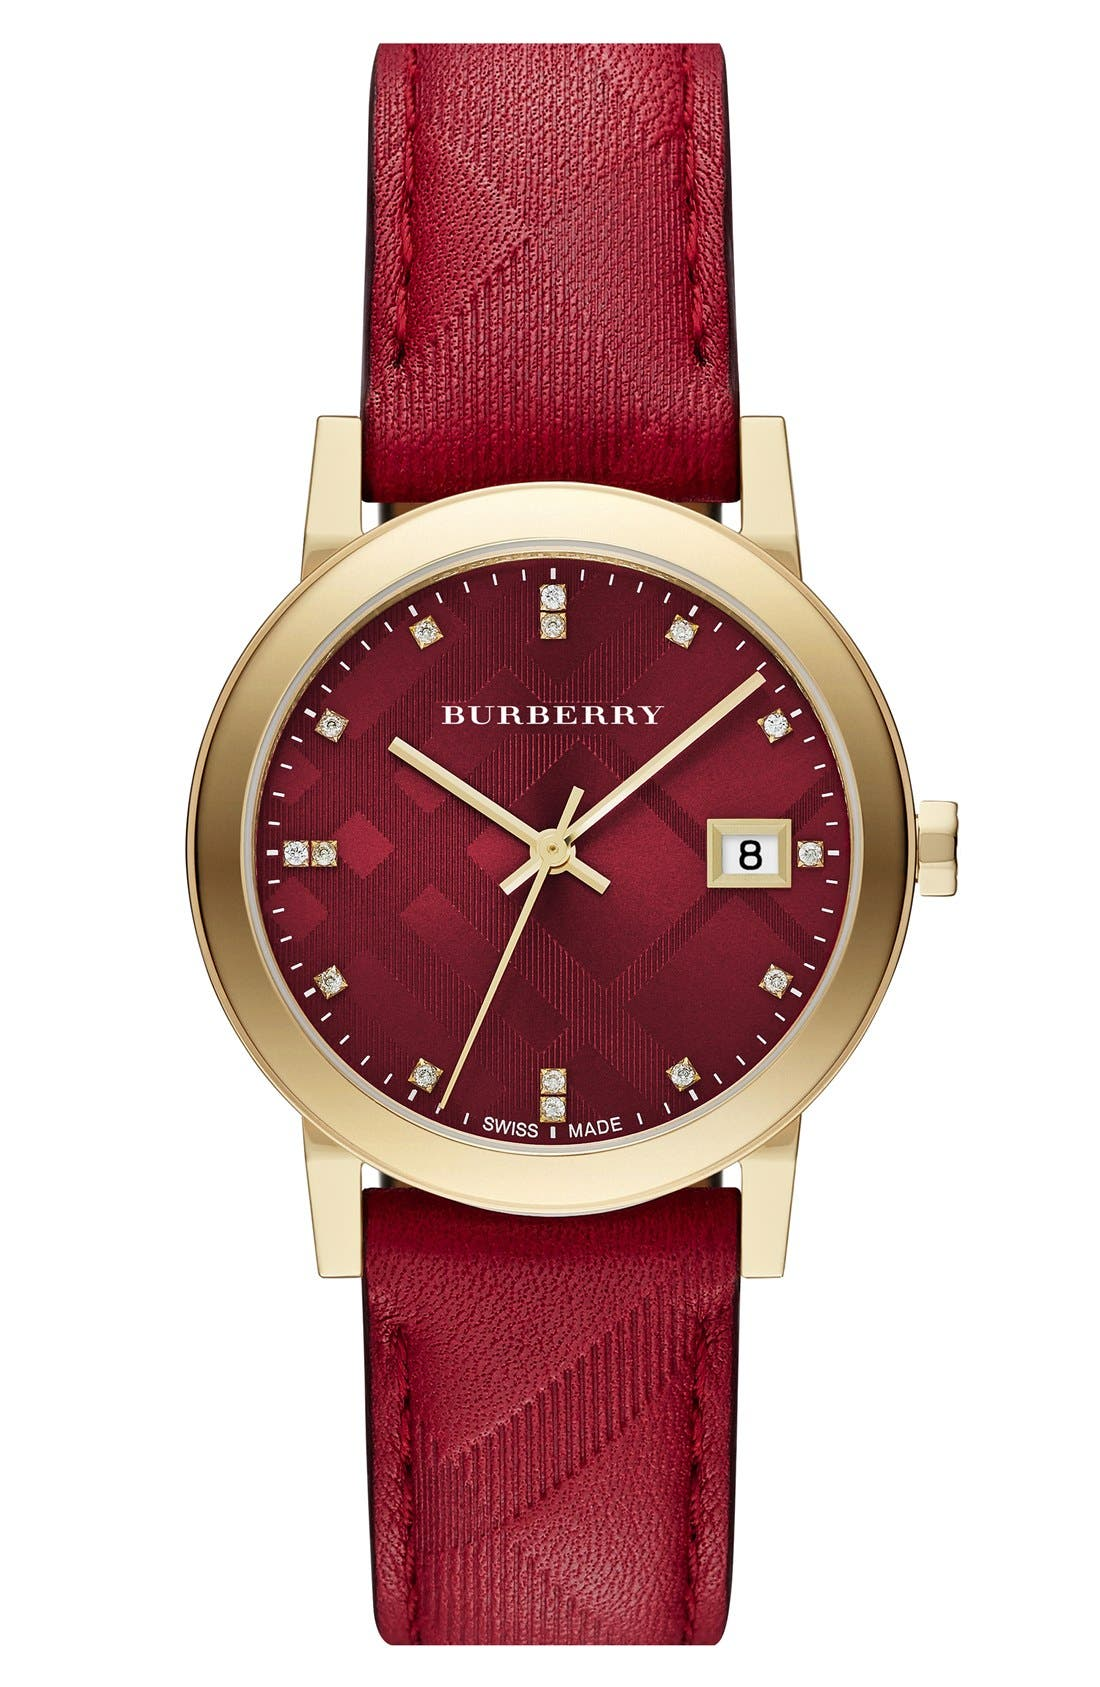 Main Image - Burberry 'New Classic' Diamond Index Leather Strap Watch, 34mm